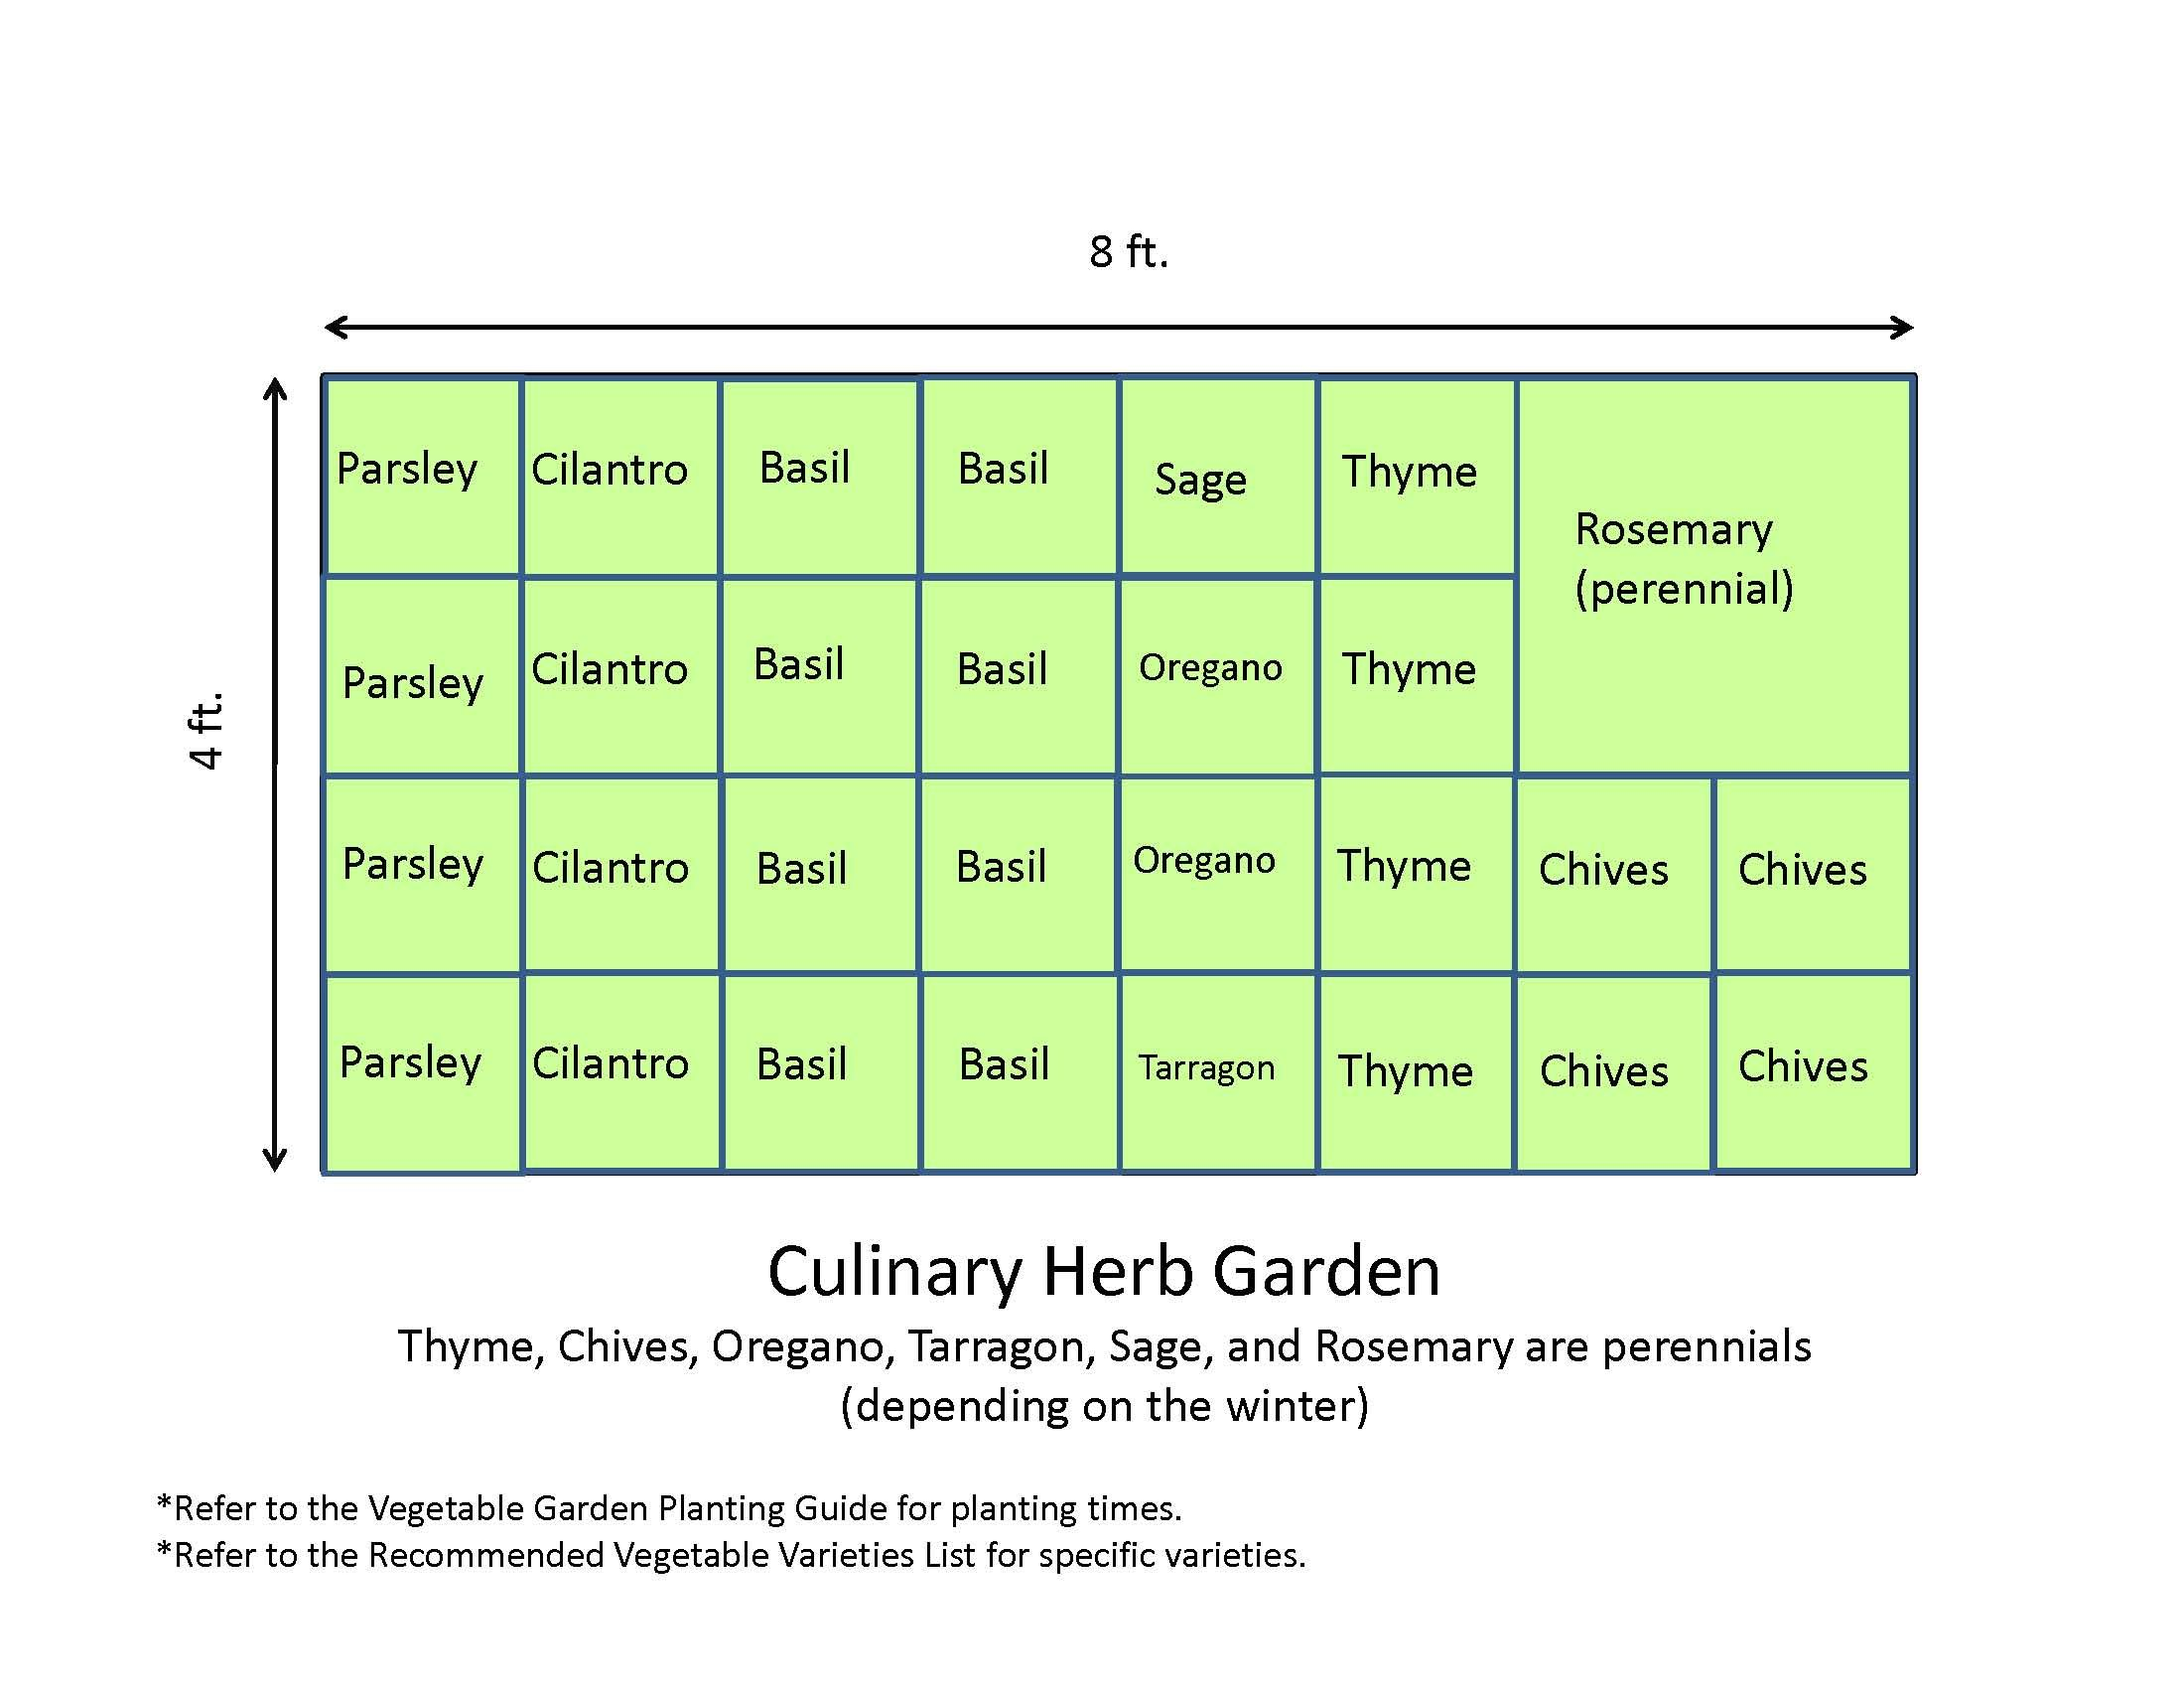 Incroyable Garden And Patio, 4x8 Culinary Herb Garden Layout Plans Ideas For Small  Garden Spaces With With Thyme, Chives, Oregano, Tarragon, Sage, And  Rosemary Are ...